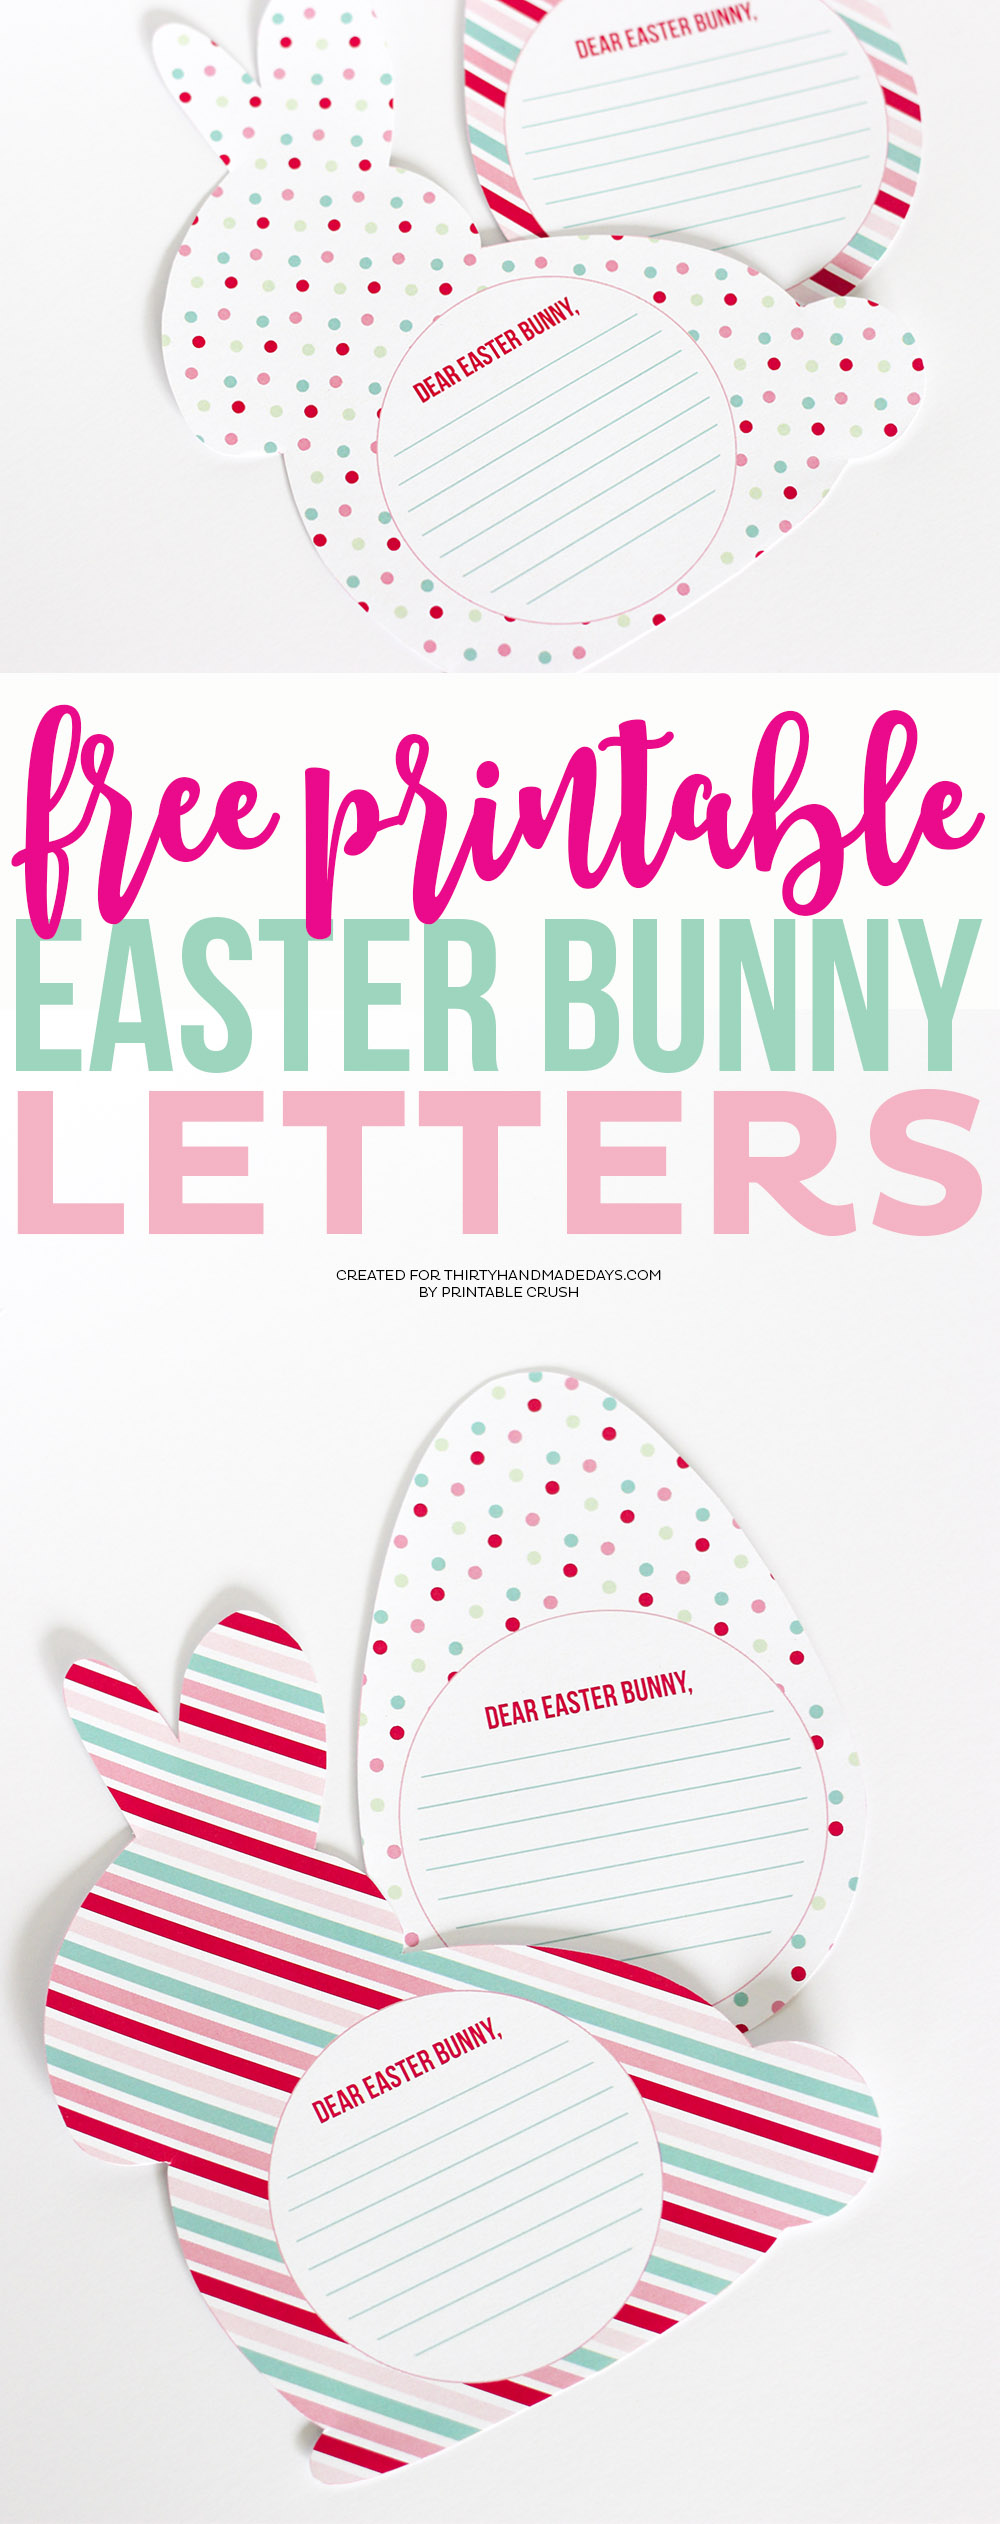 photograph relating to Letter From Easter Bunny Printable called Totally free Printable Easter Bunny Letters - 30 Do-it-yourself Times